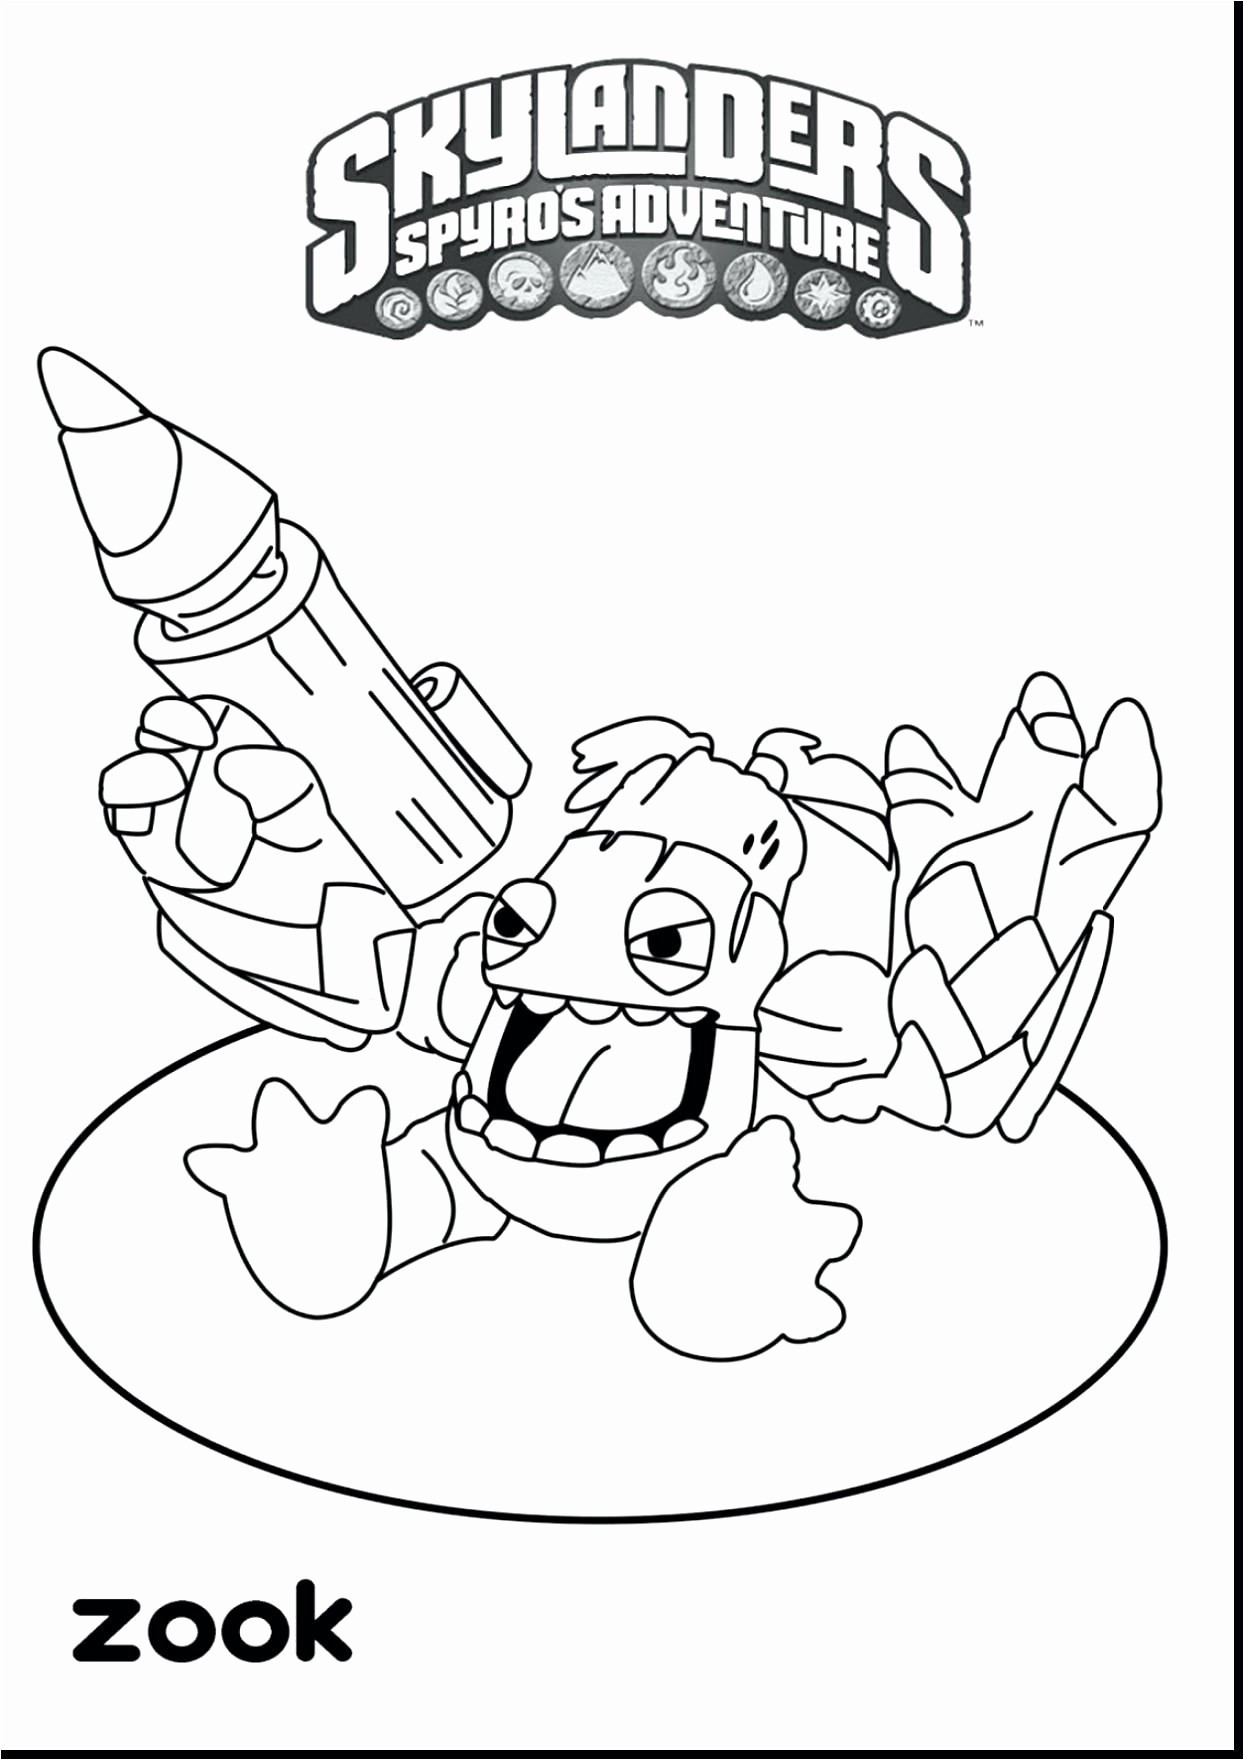 summer reading coloring pages Download-Cool 48 New S Kids Printable Coloring Pages 17-n